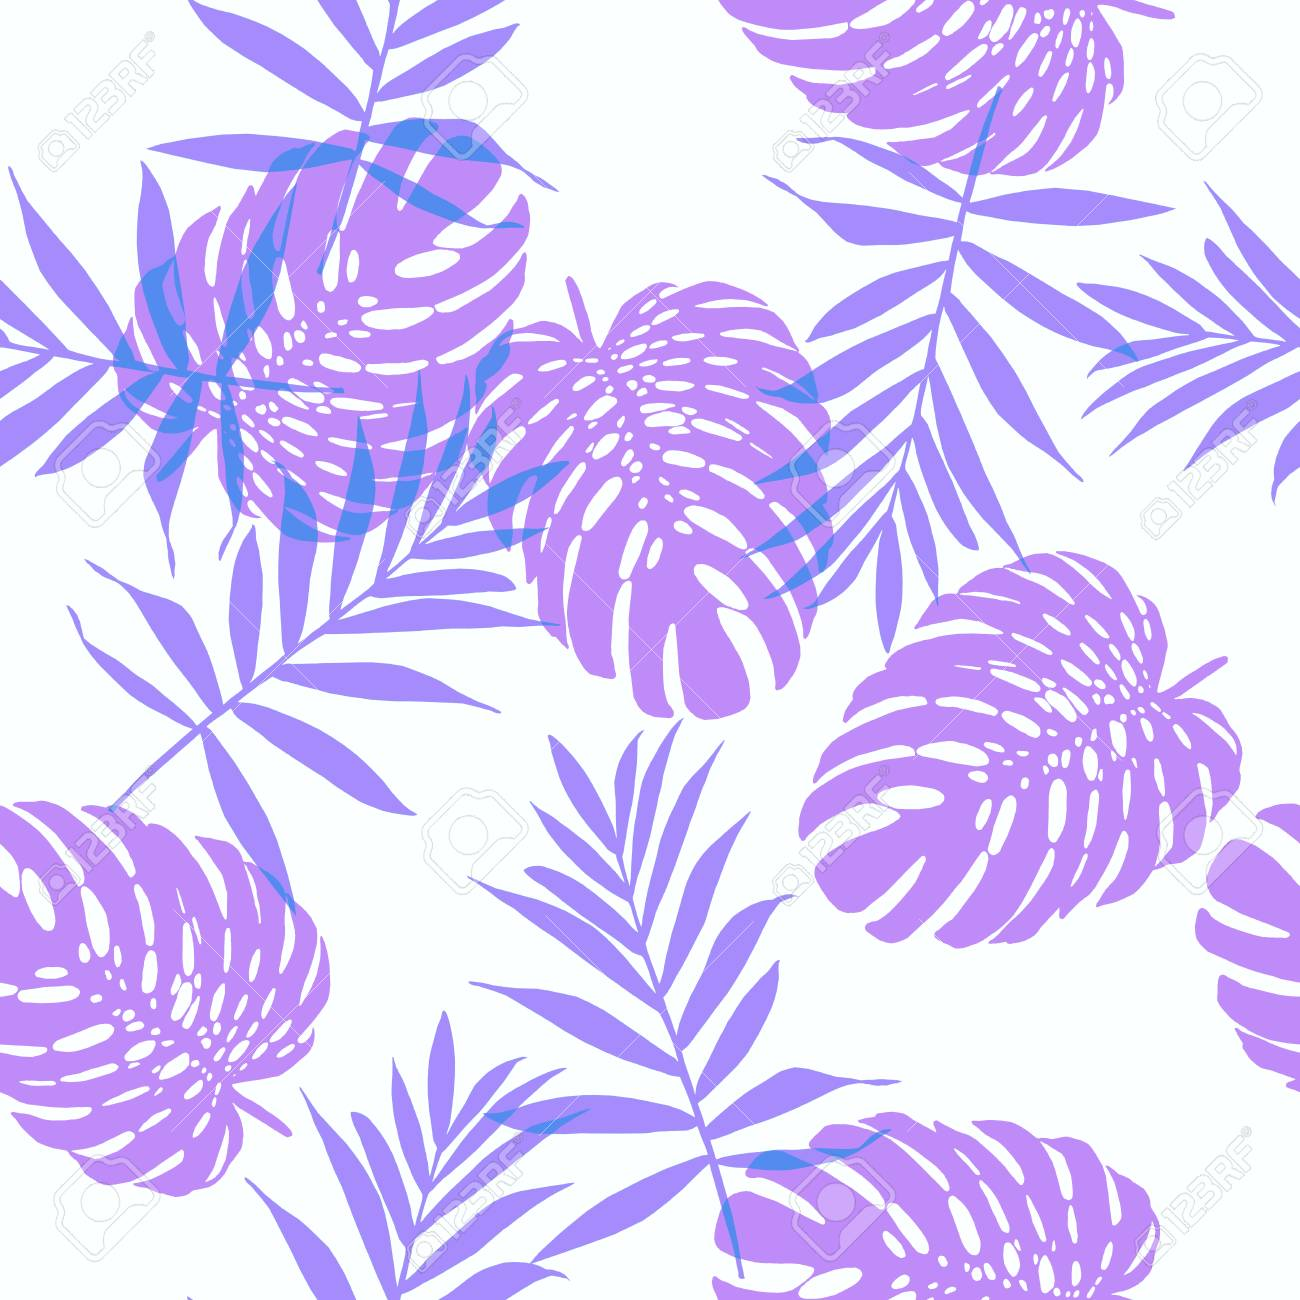 6be6227bafc Seamless floral pattern with beautiful monstera and palm leaves. Jungle  foliage violet and lavender on